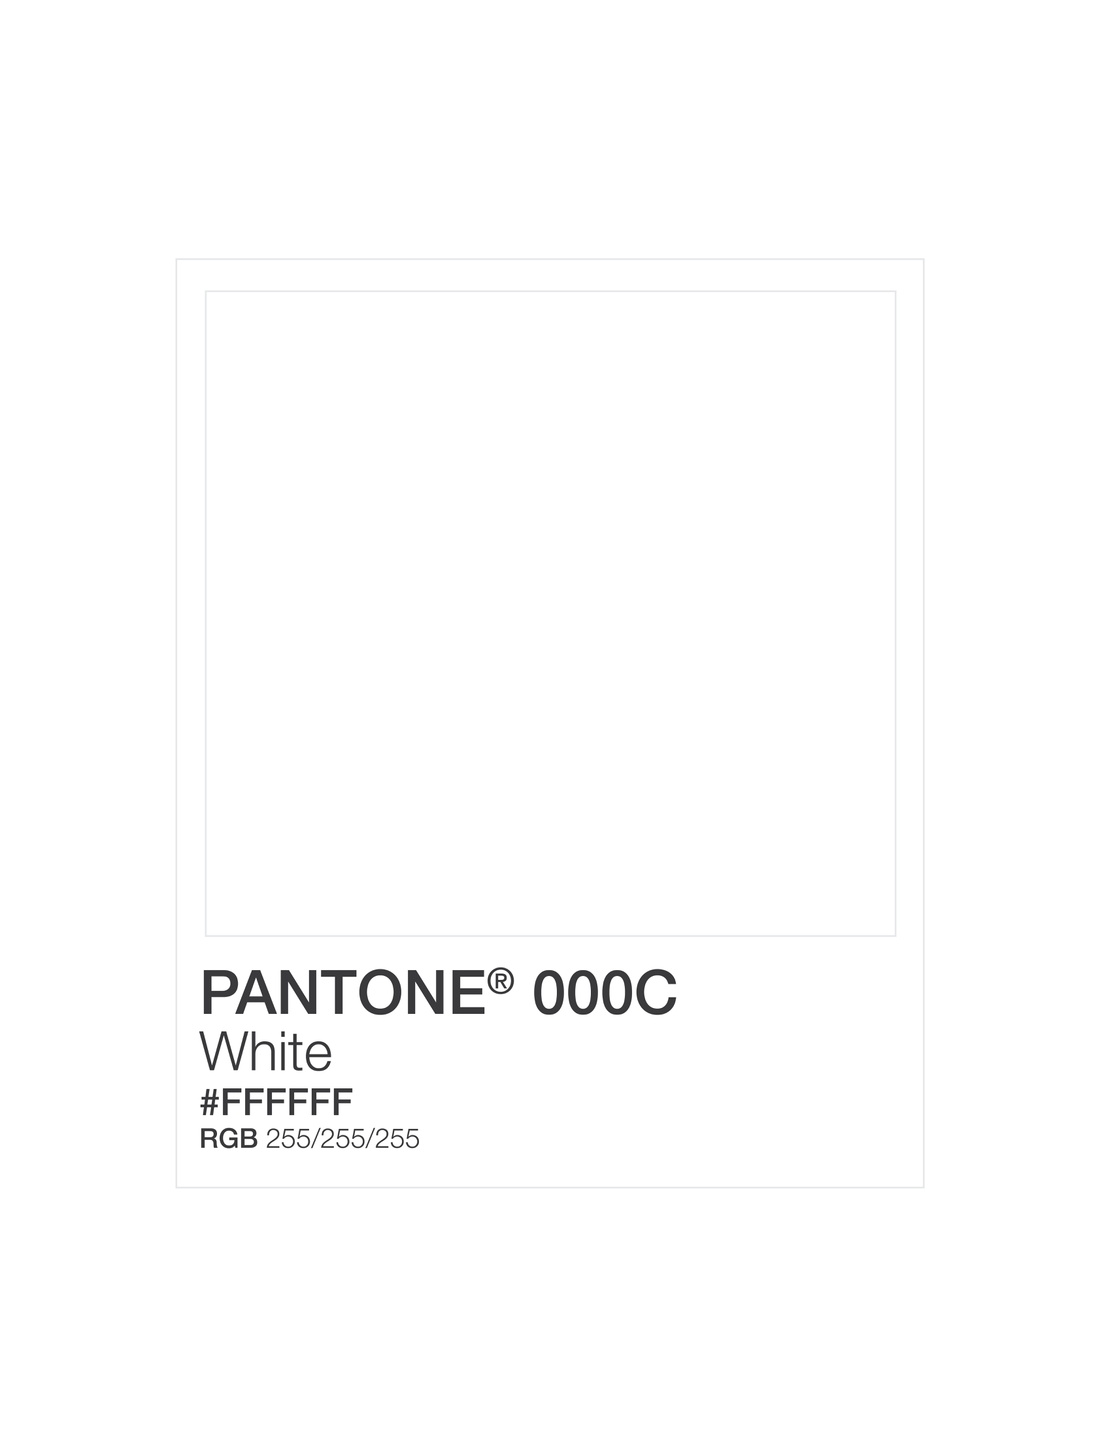 Connu PANTONE WHITE | Arquitetura | Decor | Quadros | Pinterest | Pantone JK12